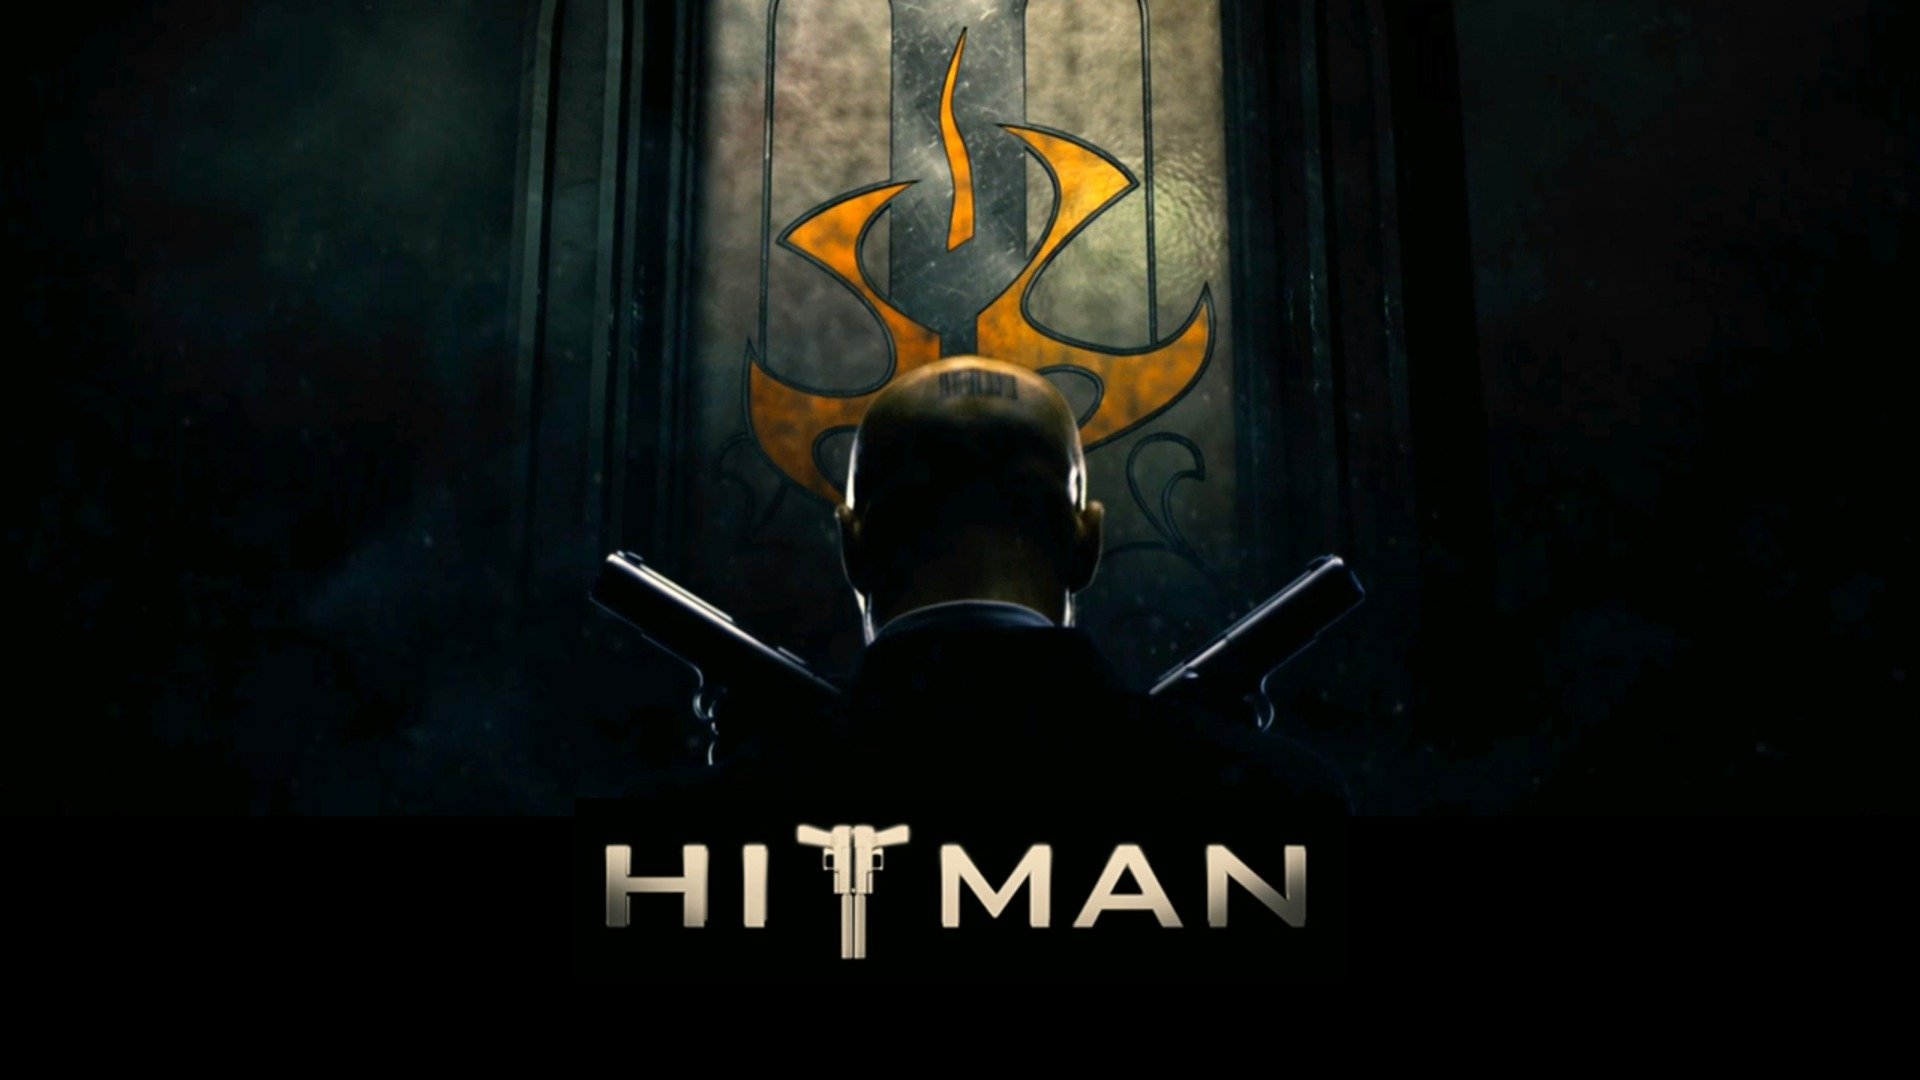 Hitman Codename 47 Hd Wallpaper Background Image 1920x1080